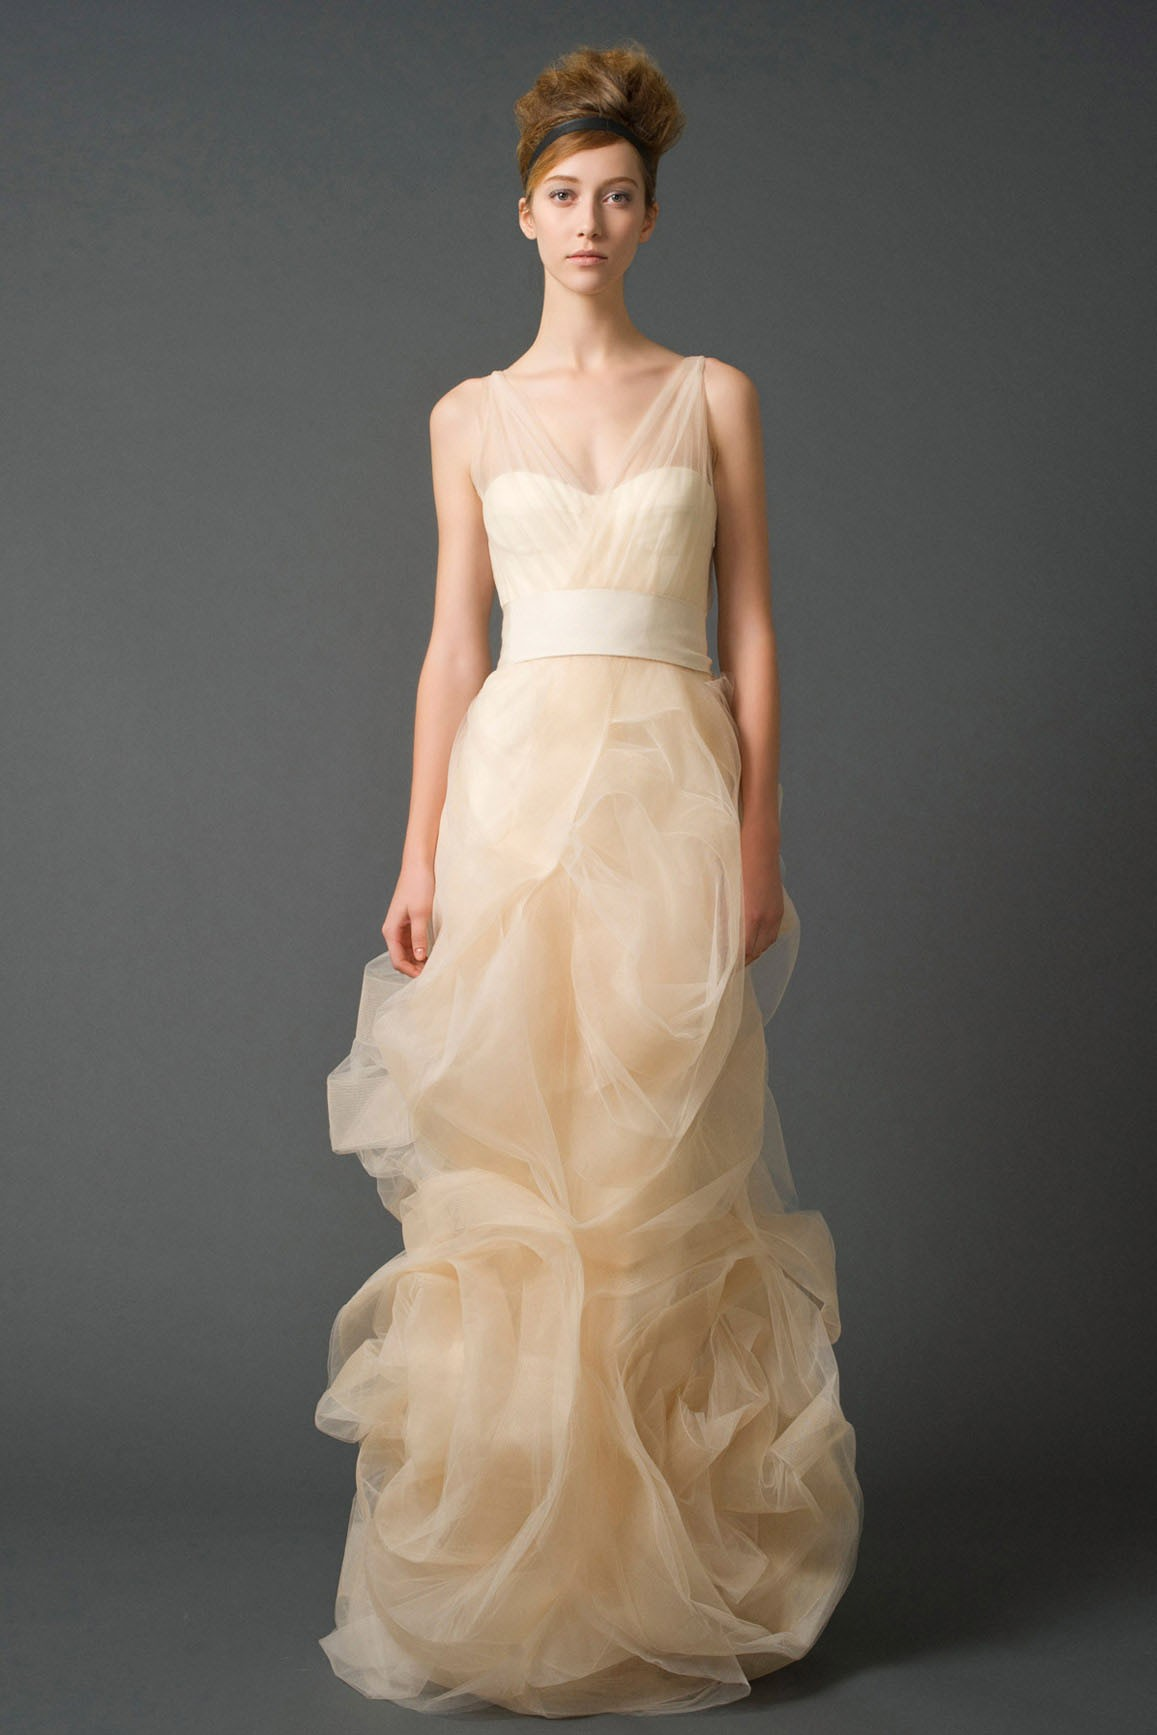 Wedding Champagne Colored Dresses champagne colored dresses dressed up girl color dresses